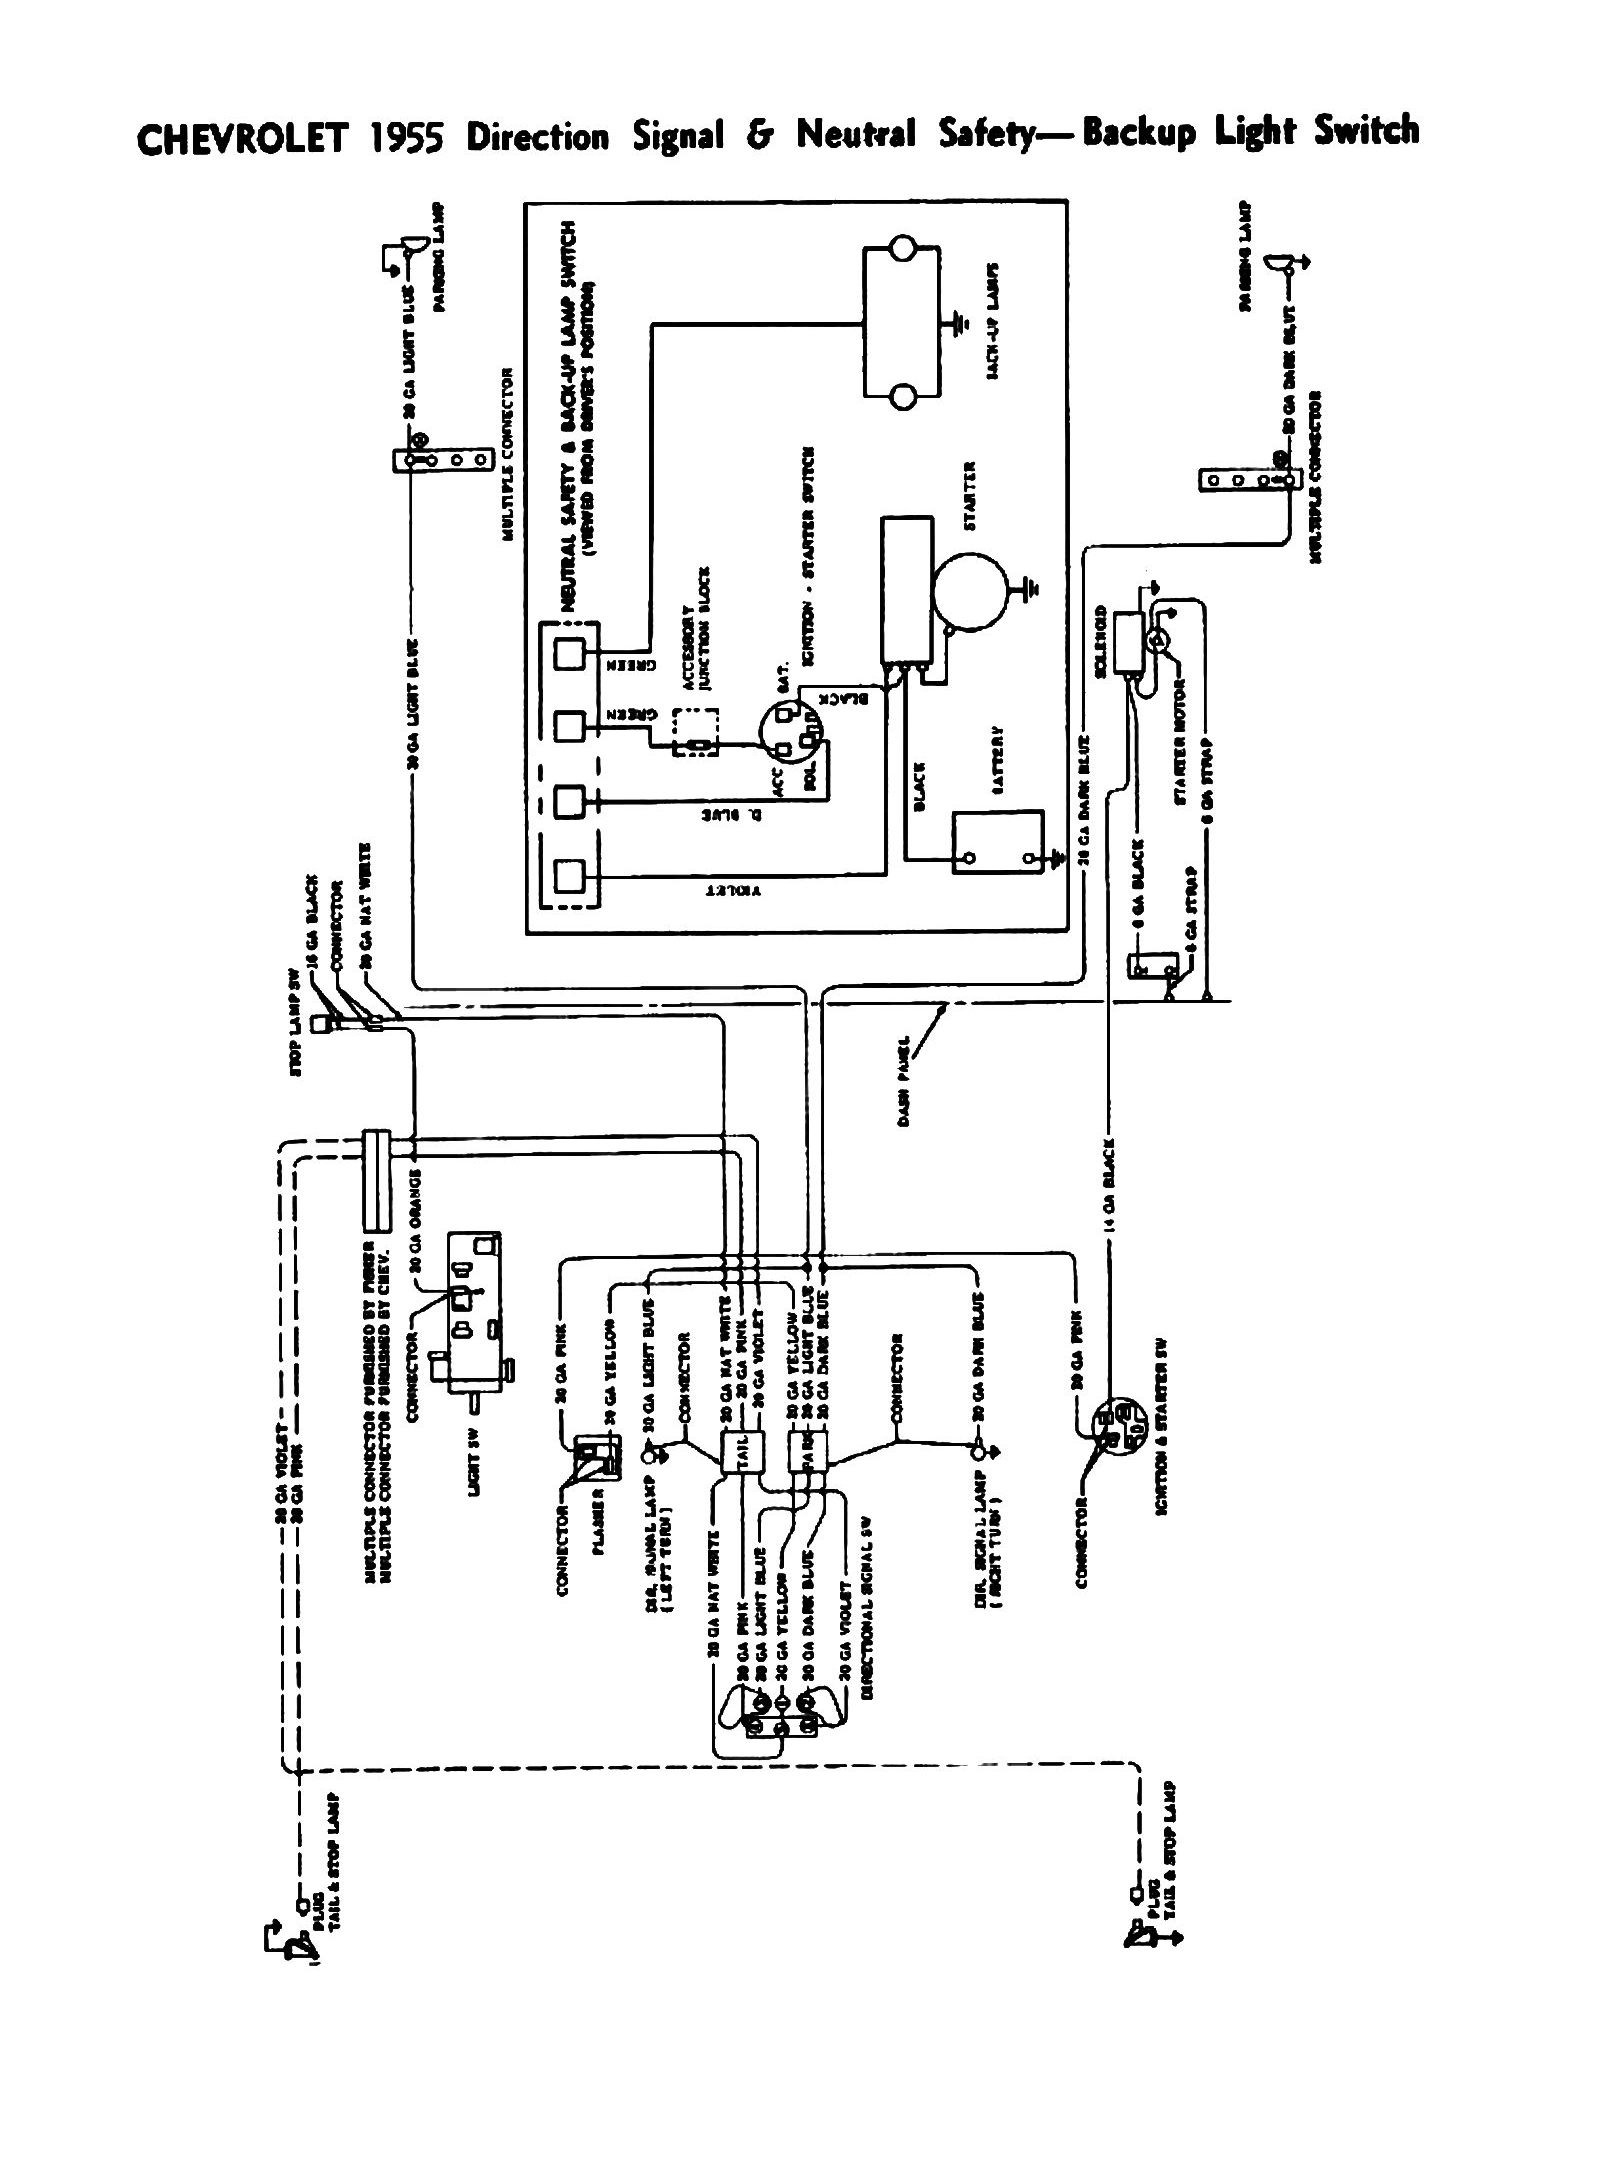 1955 Chevy Ignition Switch Wiring Diagram Library Omc 5005801 1979 Ford F150 And Of Related